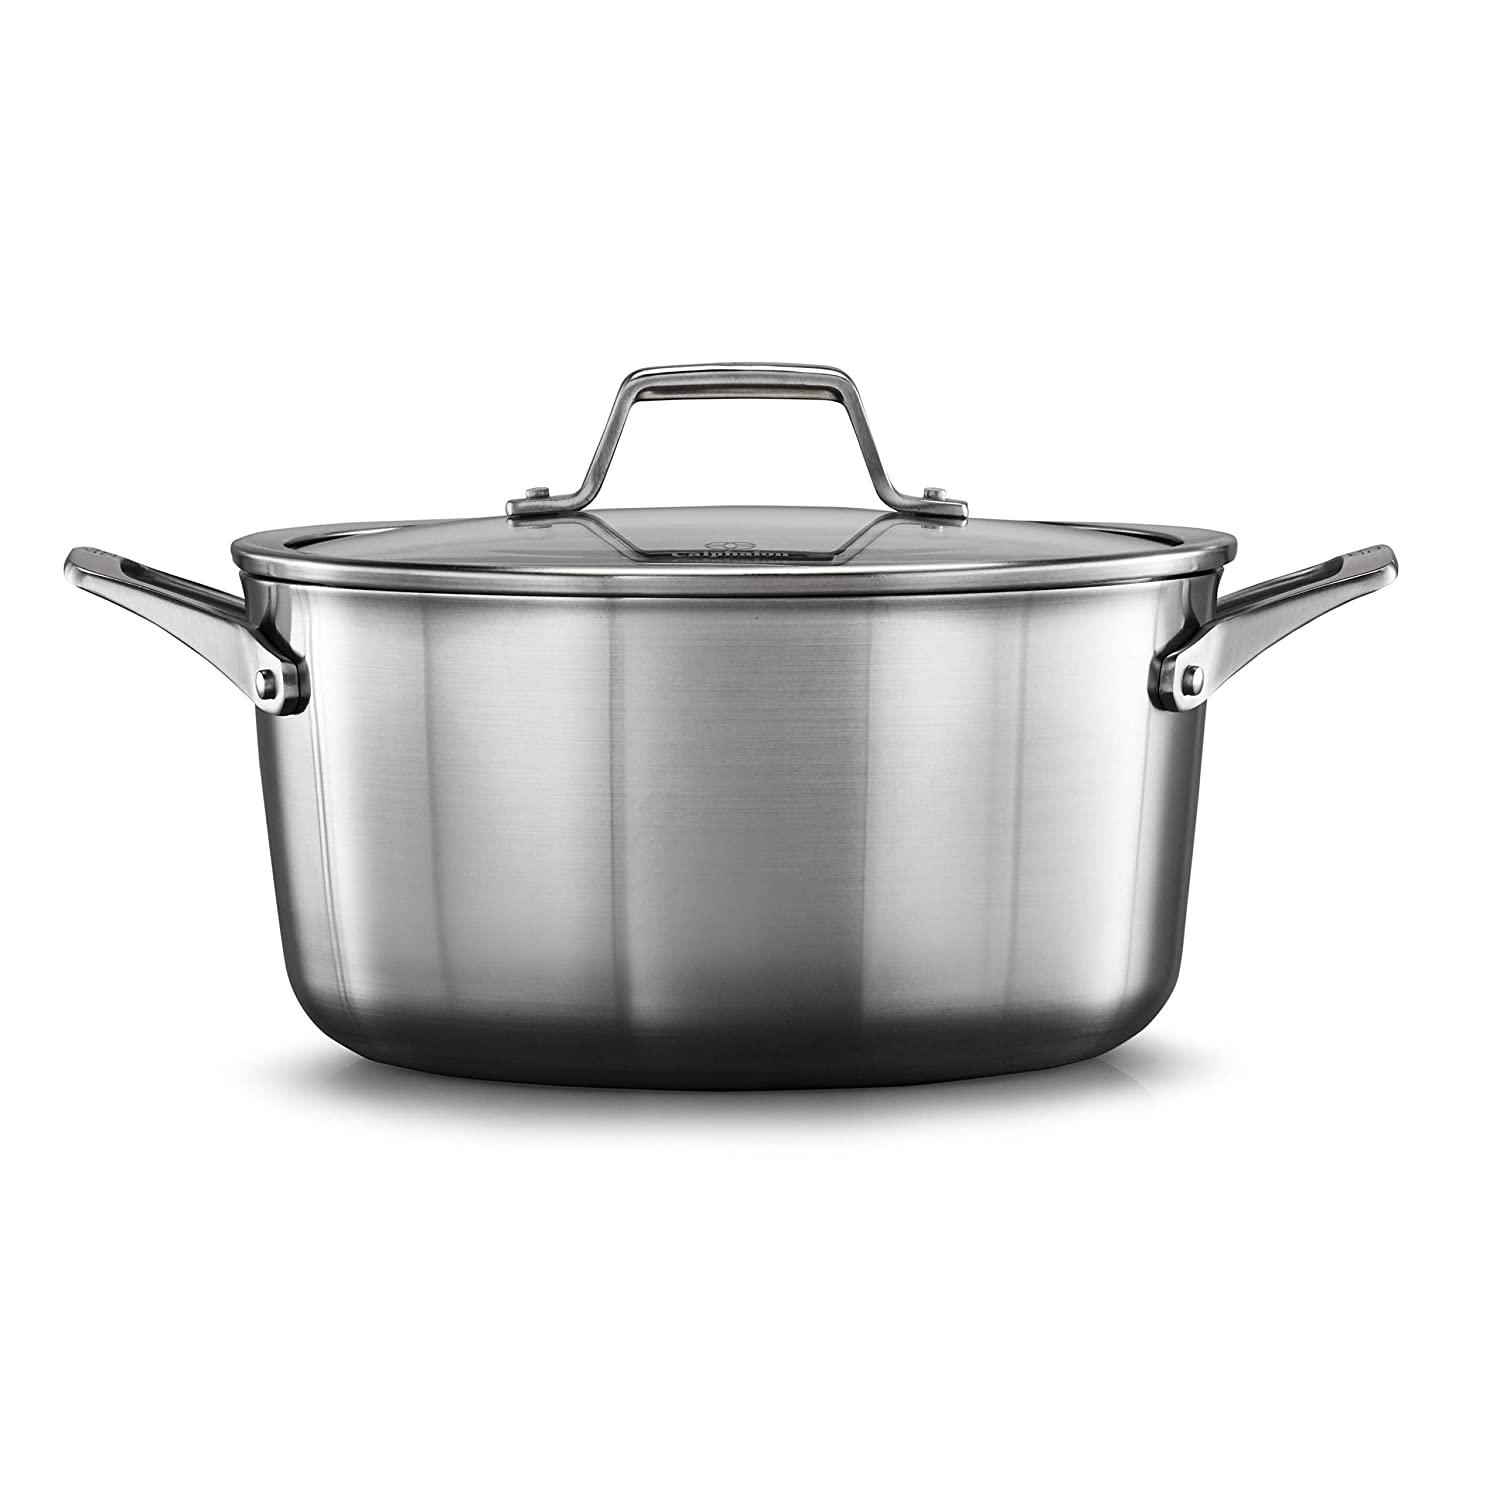 Calphalon 2029660 Premier Stainless Steel 6-Quart Stock Pot with Cover, Silver